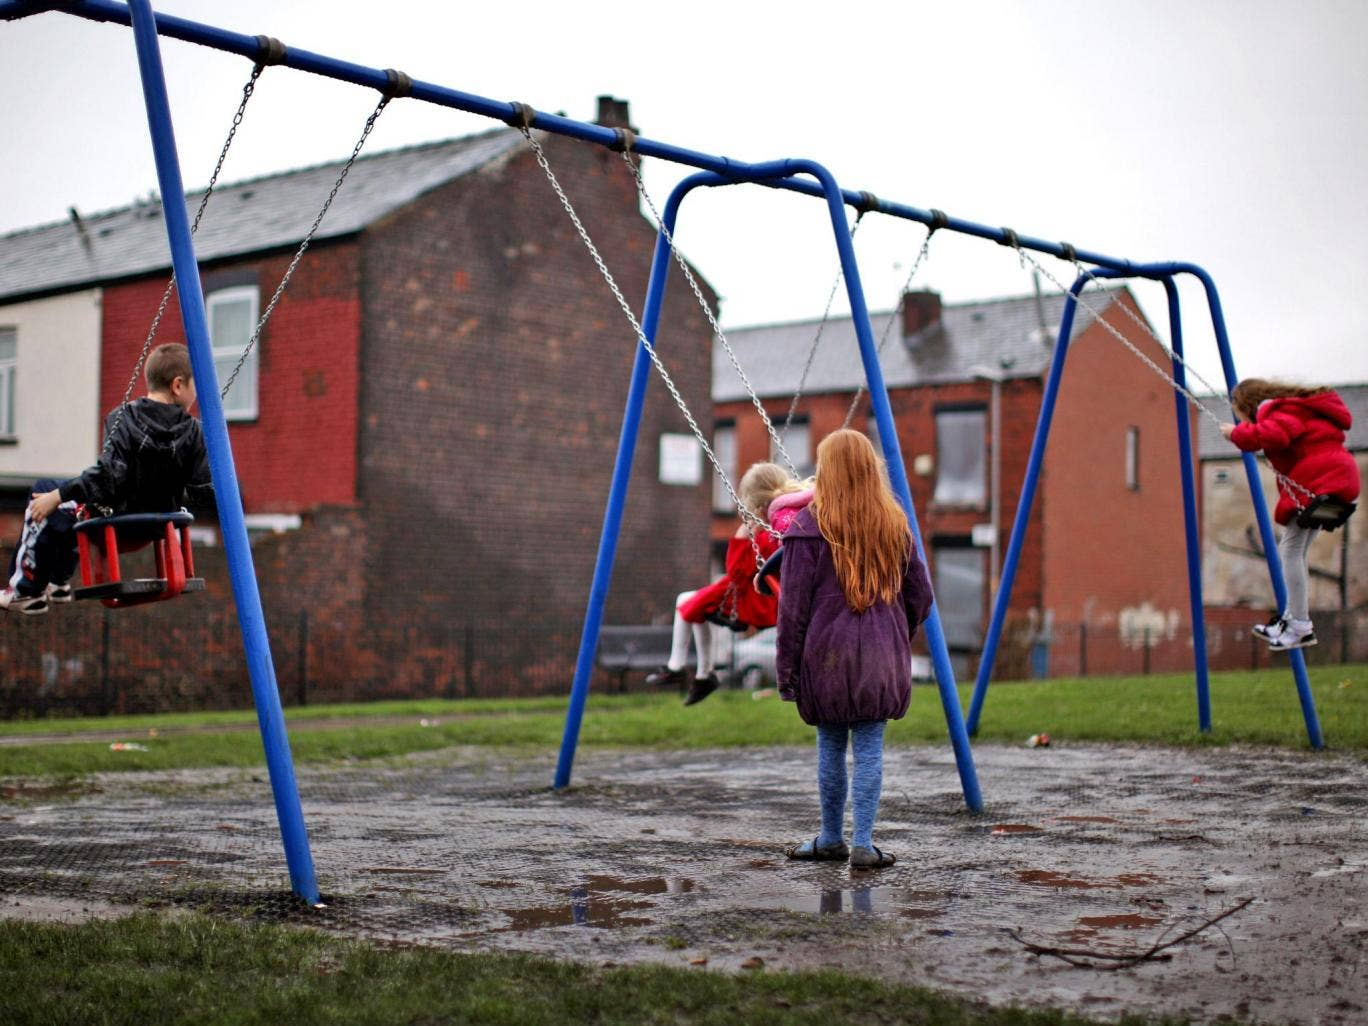 Five million of Britain's poorest children will lose an average of £750 each a year